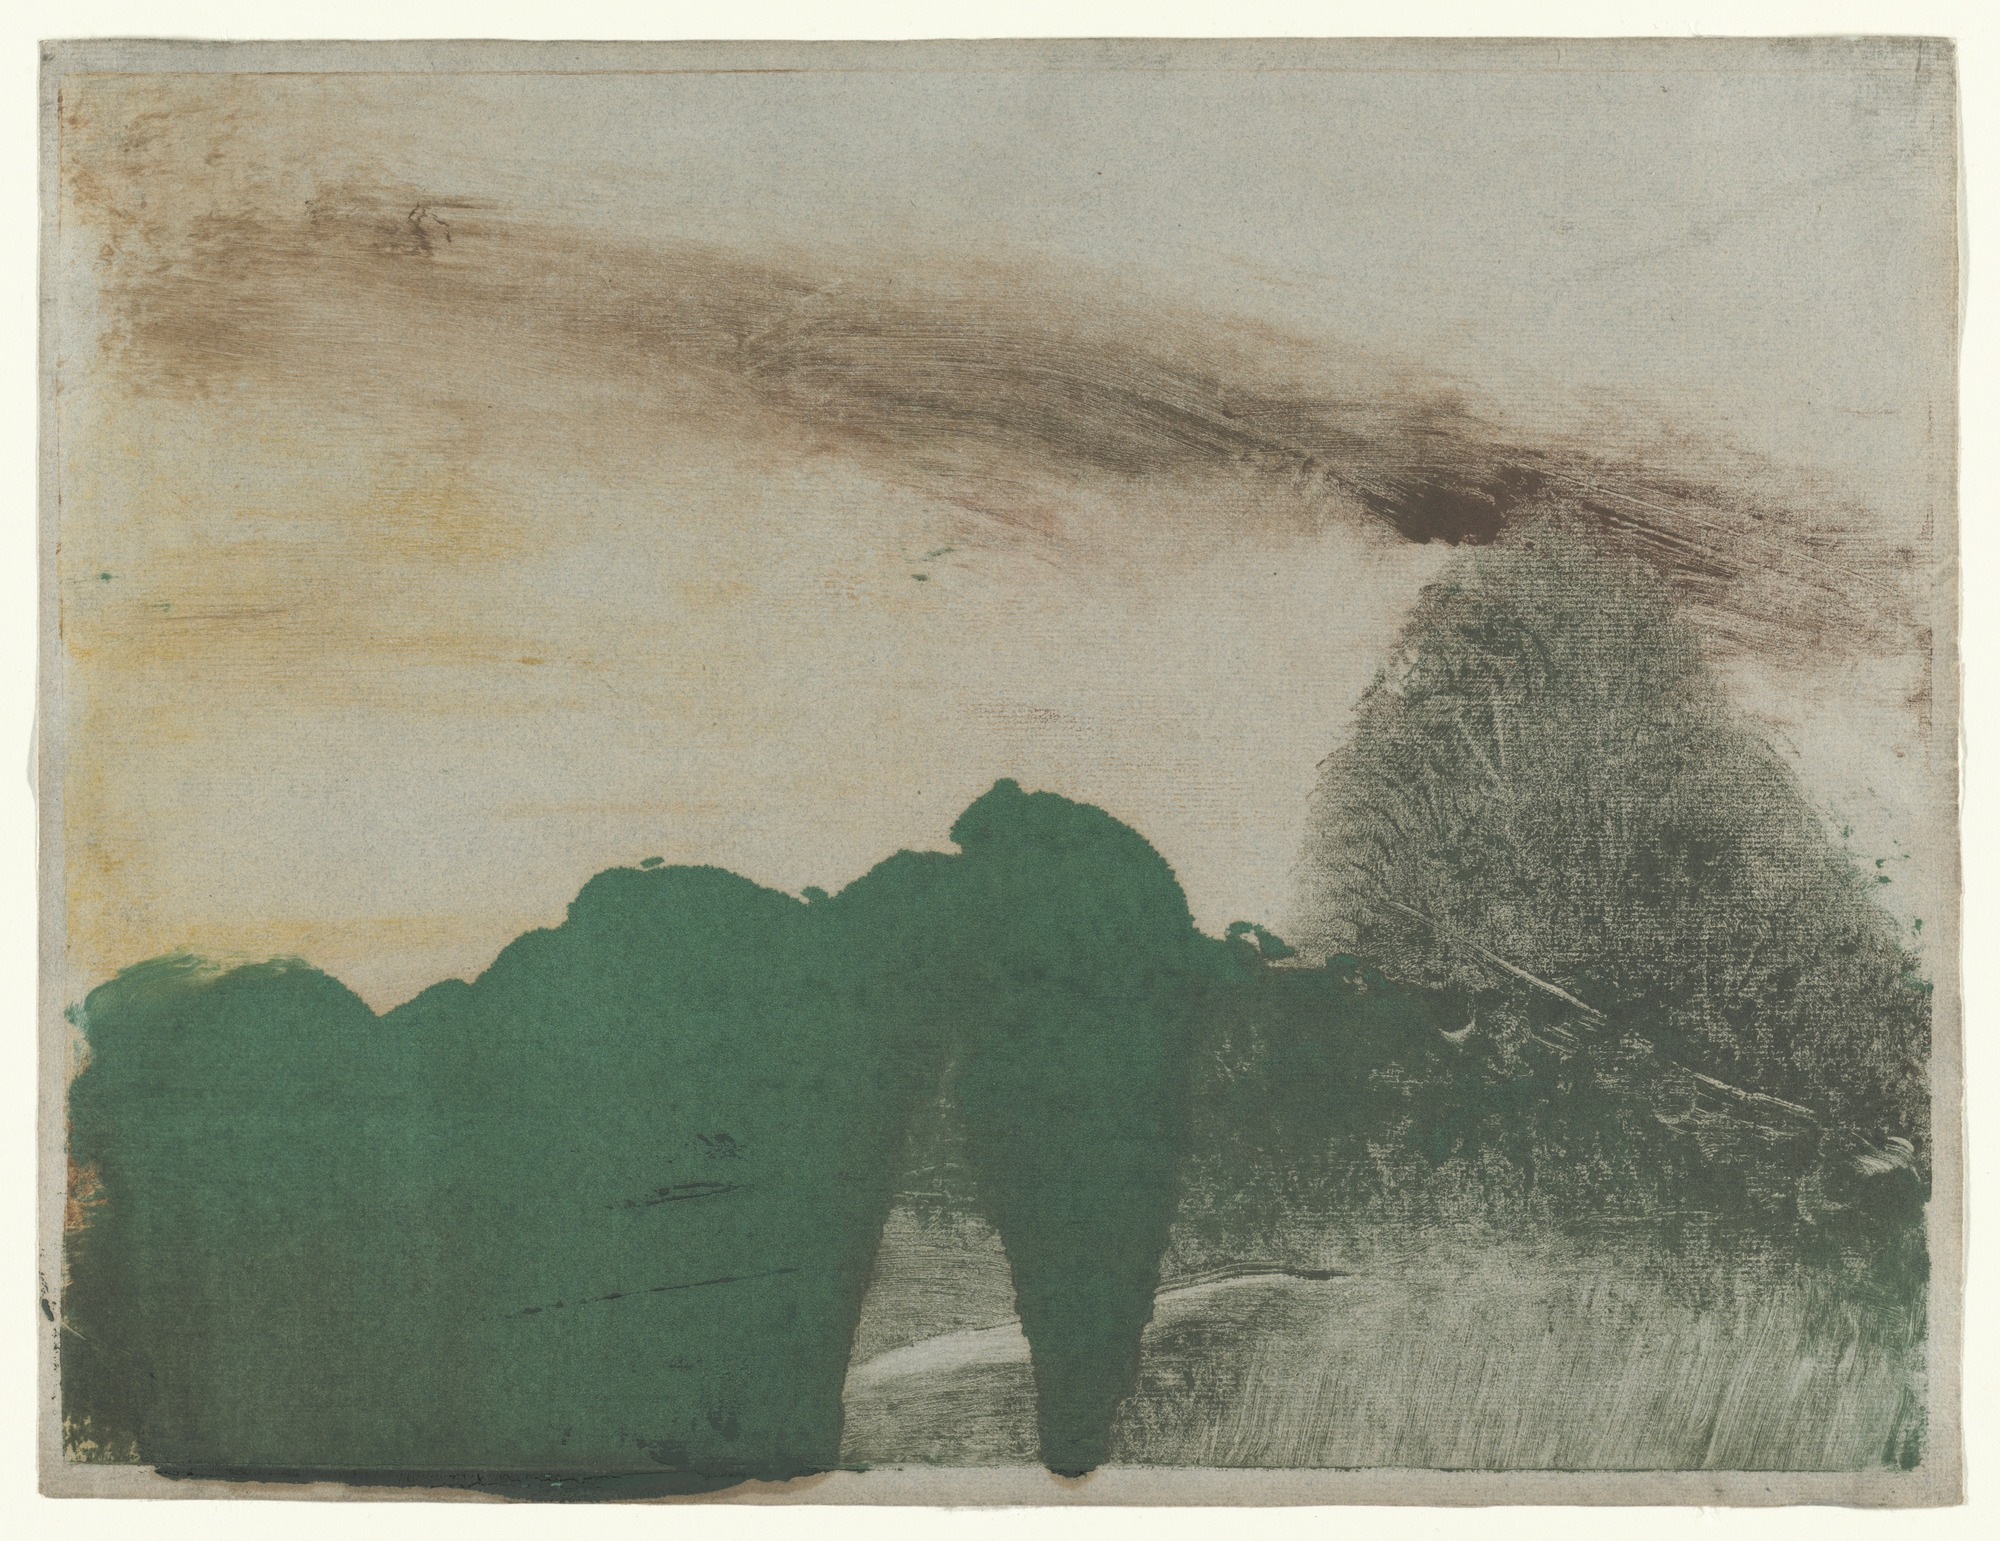 Forest in the Mountains  (Forêt dans la montagne), Hilaire-Germain-Edgar Degas, c.1890. Monotype in oil on paper